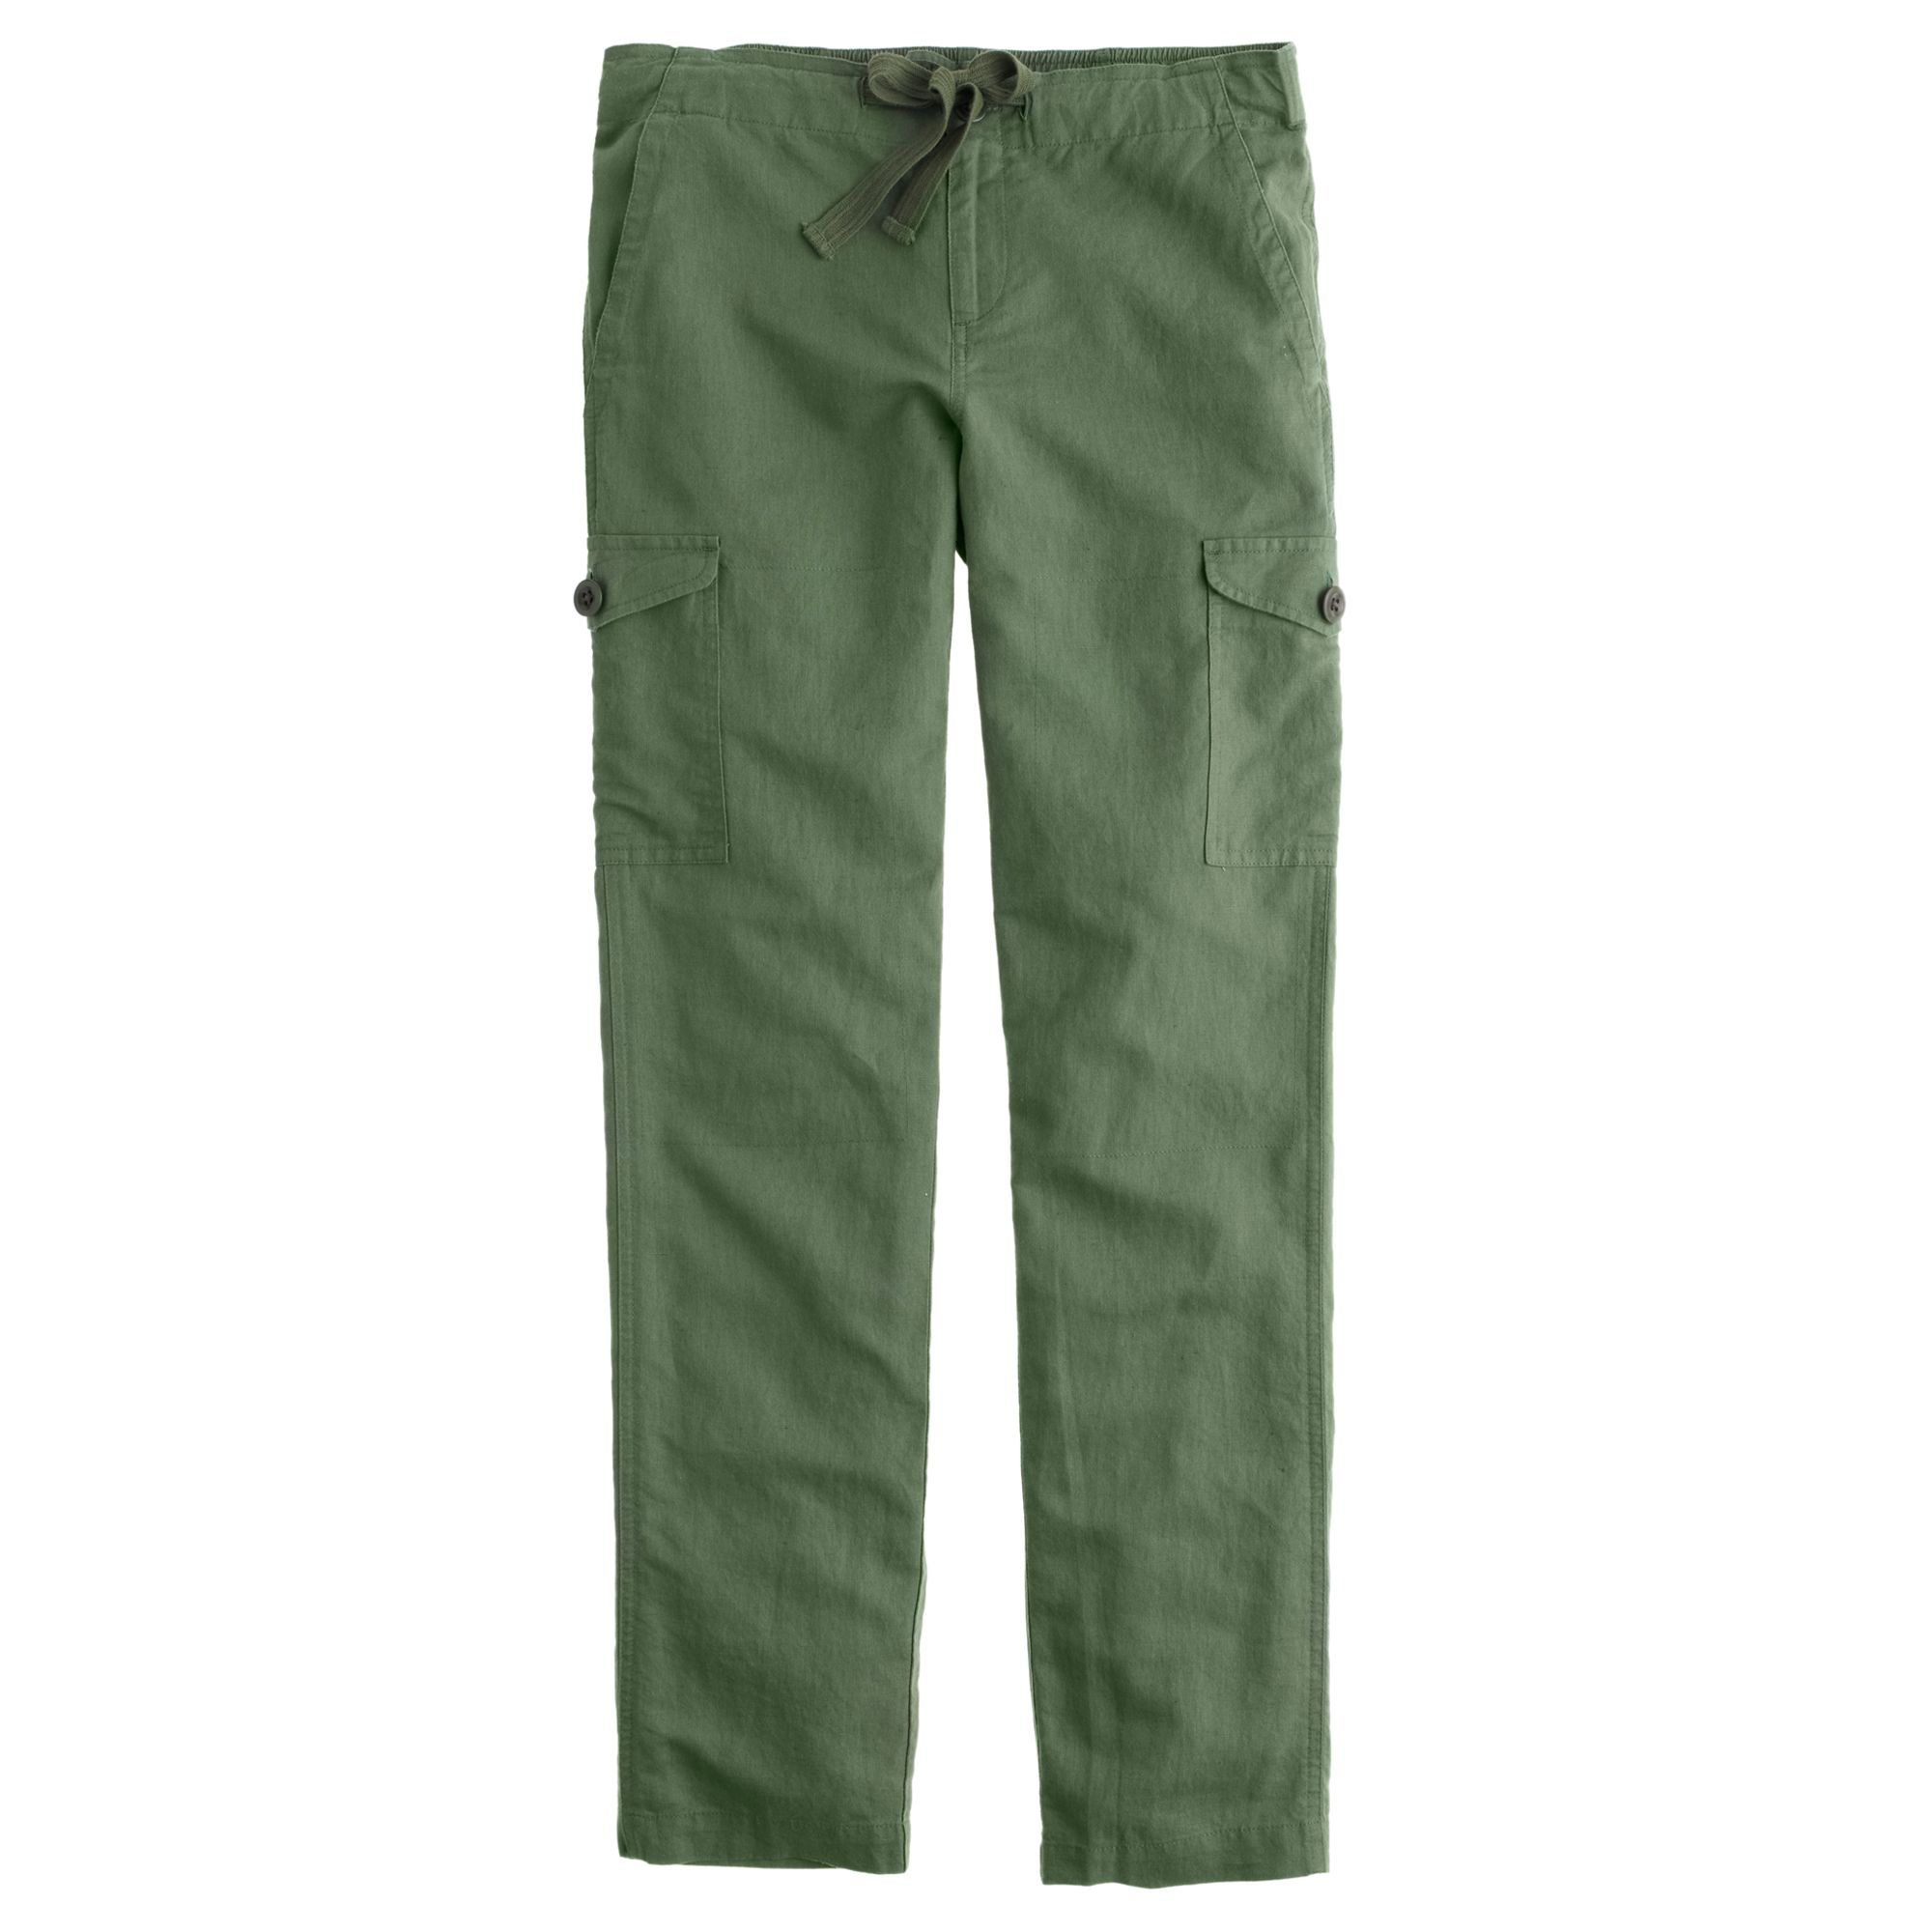 Find great deals on eBay for linen cargo pants. Shop with confidence.